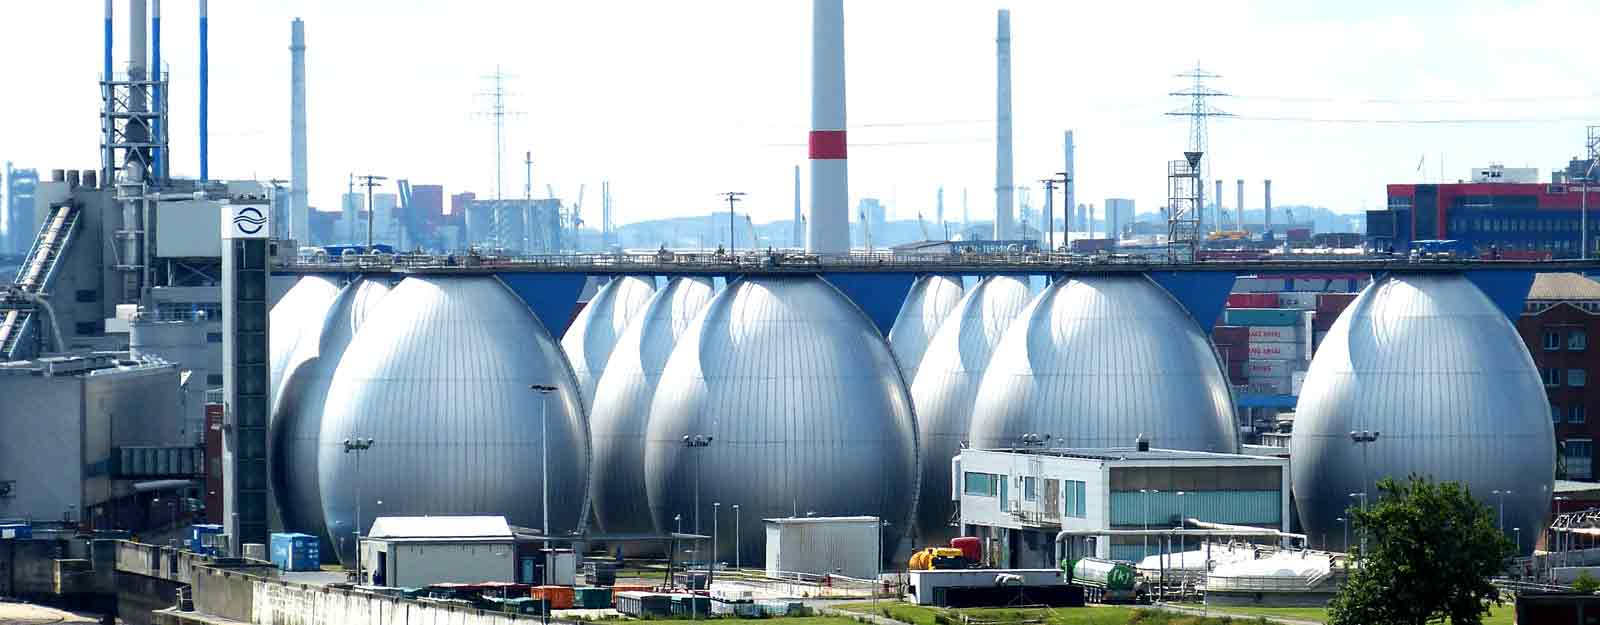 Photo of a wastewater treatment plant.